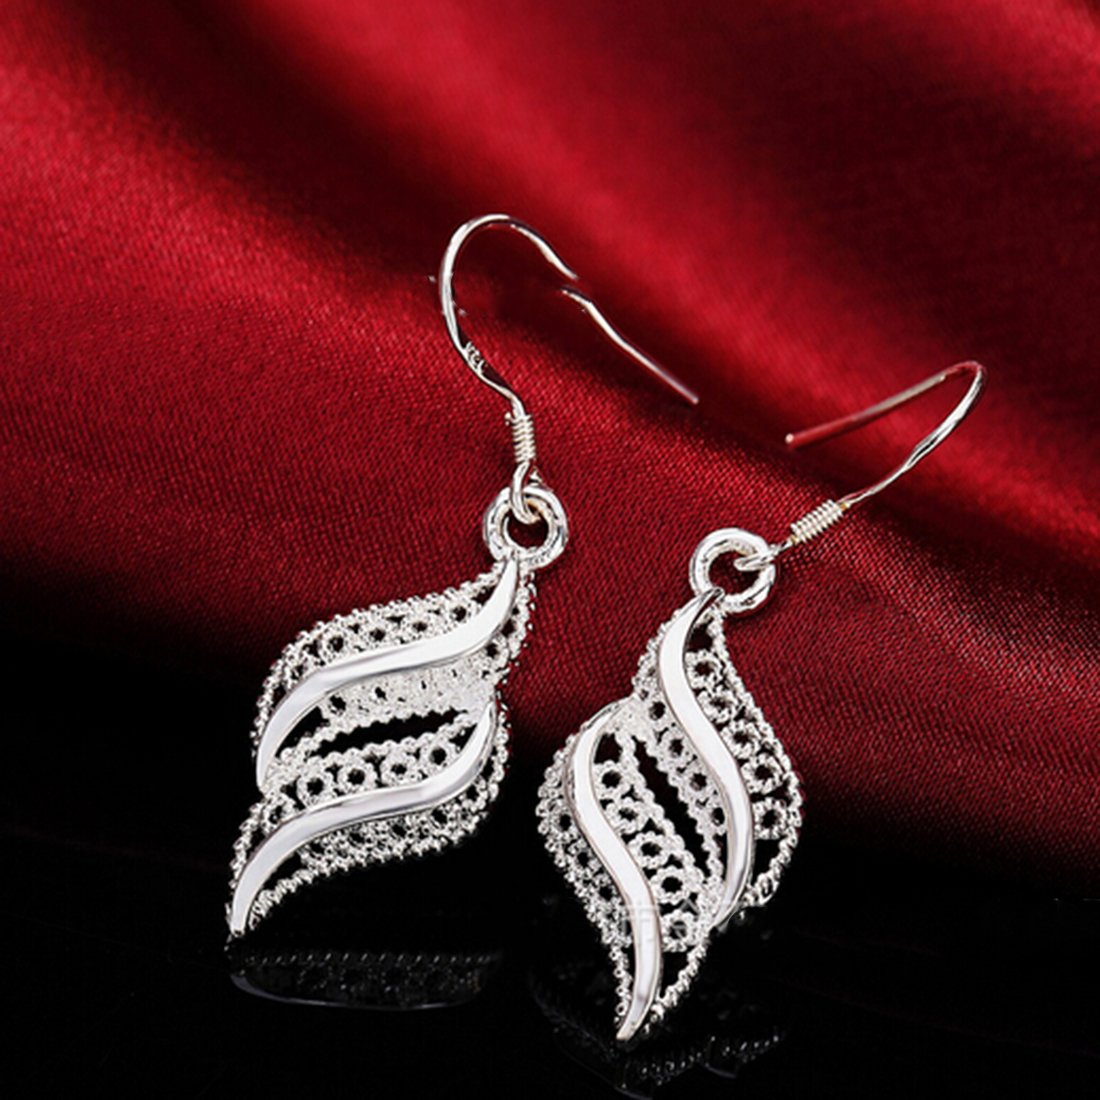 1 pair Women Silver Small Earring Wavy Leaf Shaped Stud Earrings